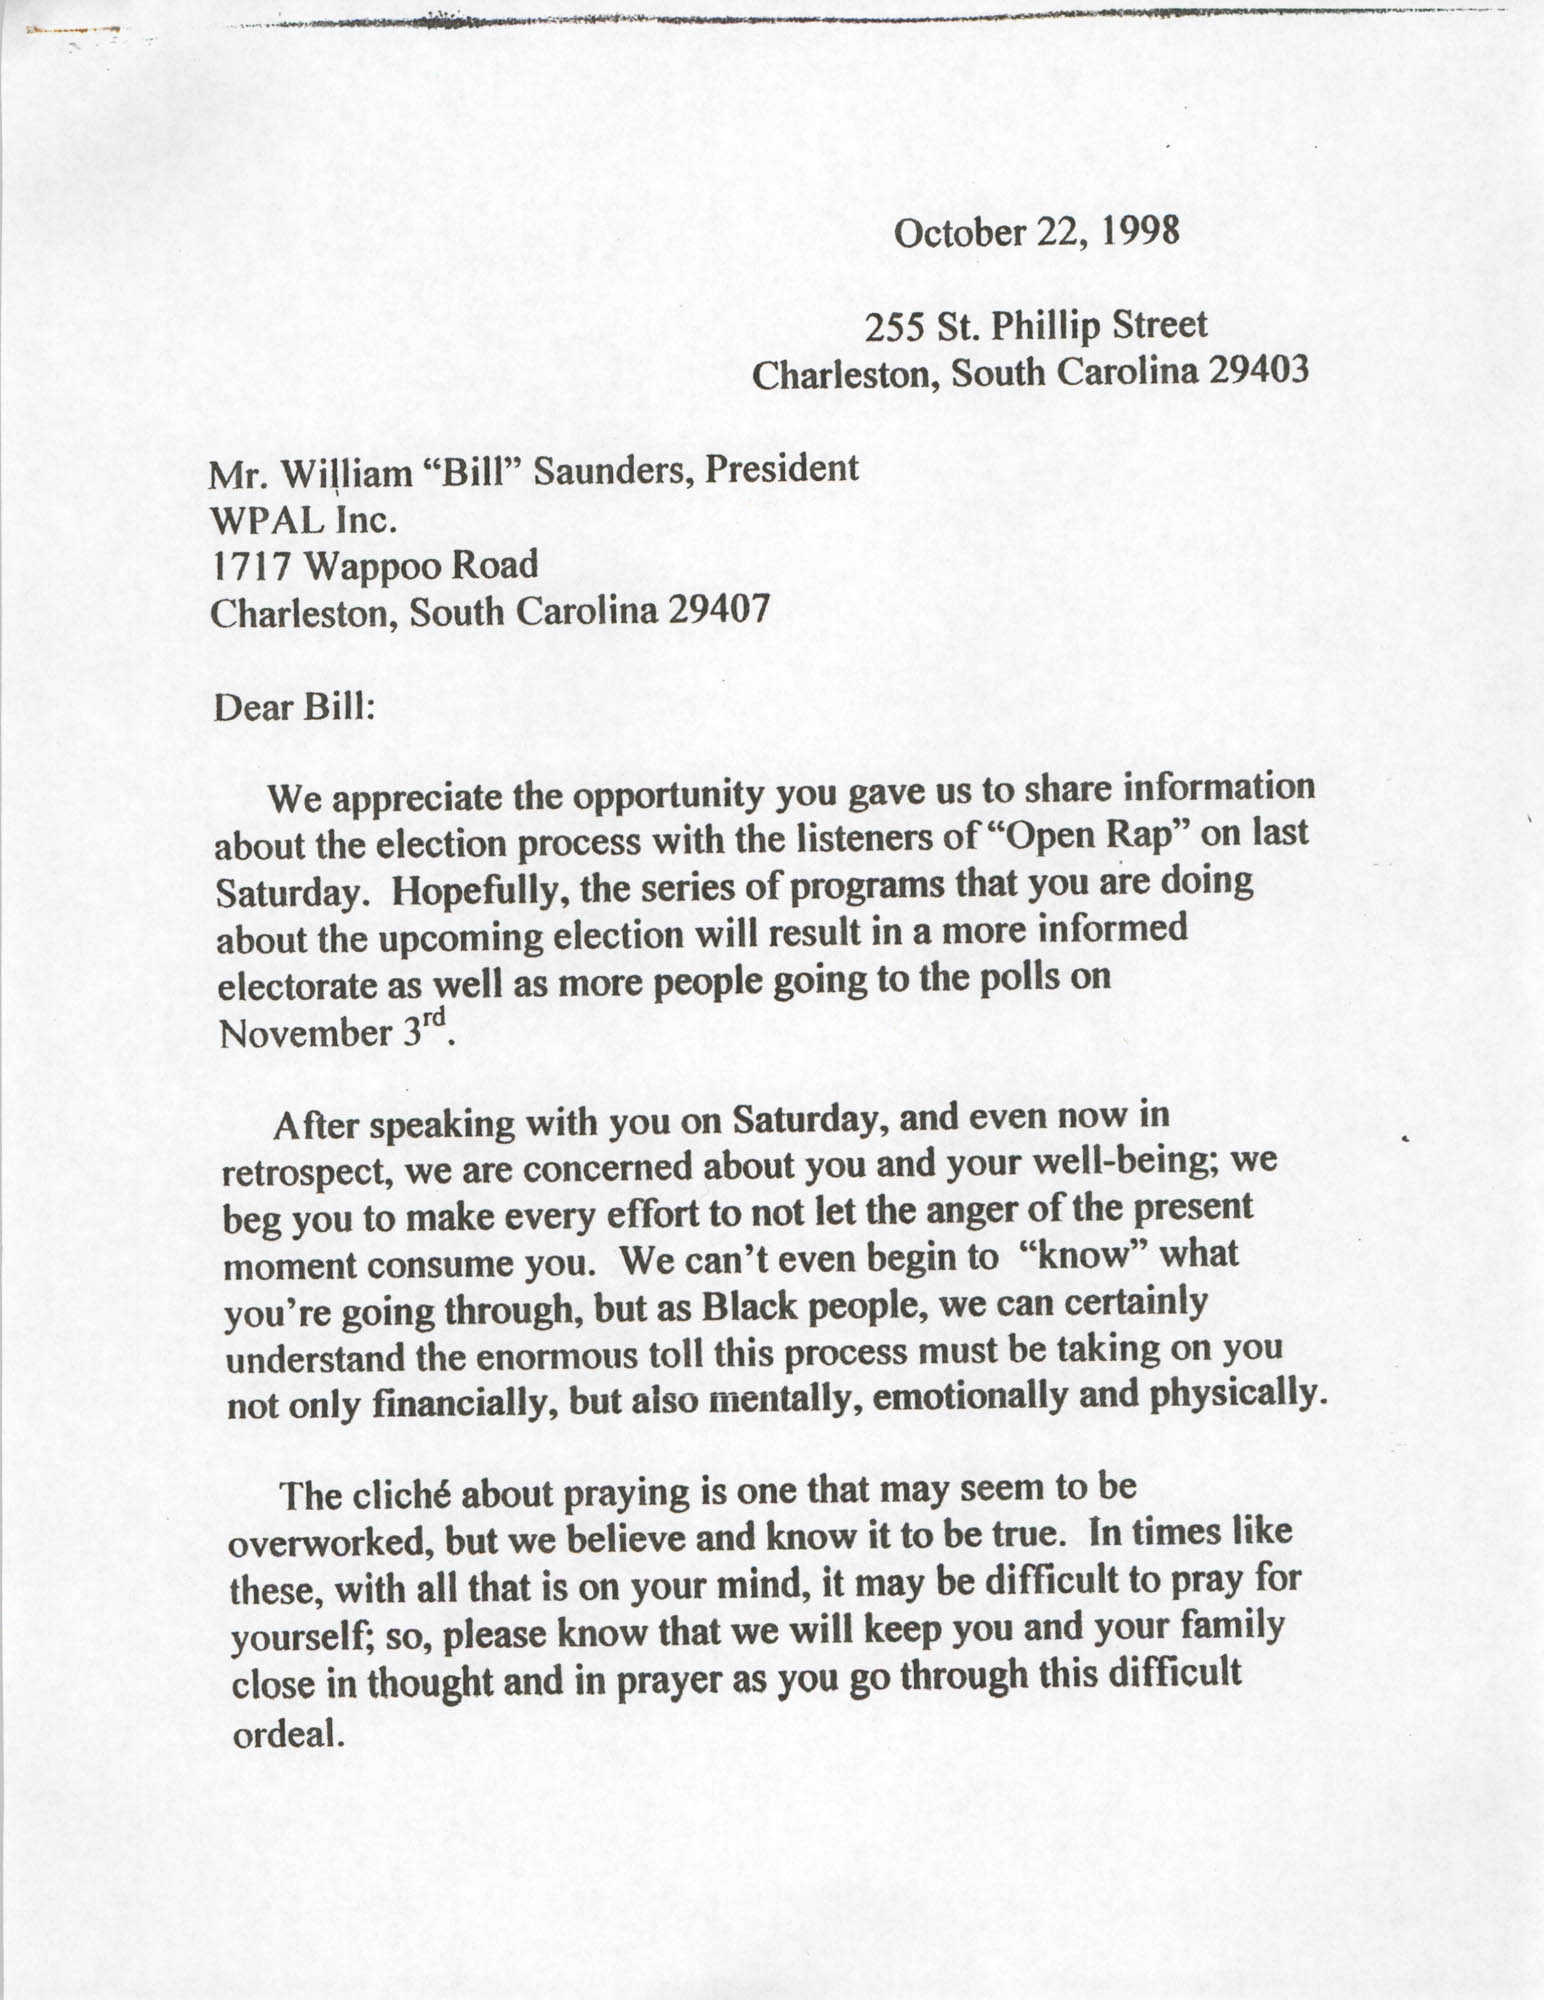 Letter from John L. Chisolm and Carolyn Lecque Collins to William Saunders, October 22, 1998